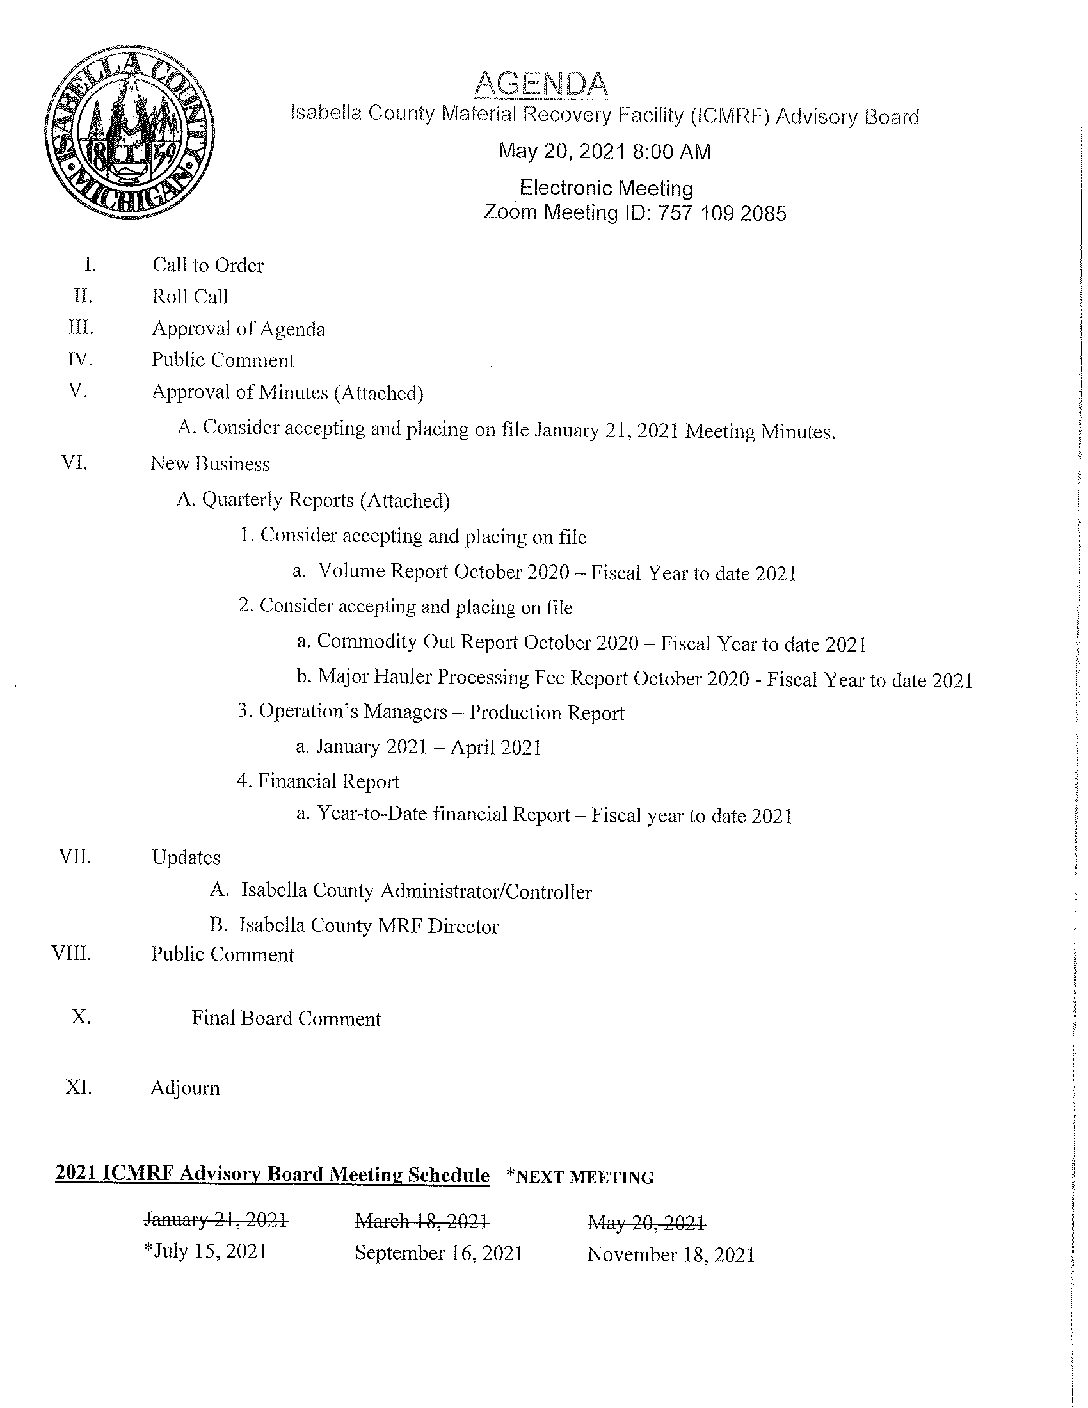 preview image of first page MRF Advisory Board Meeting Packet 5.20.2021